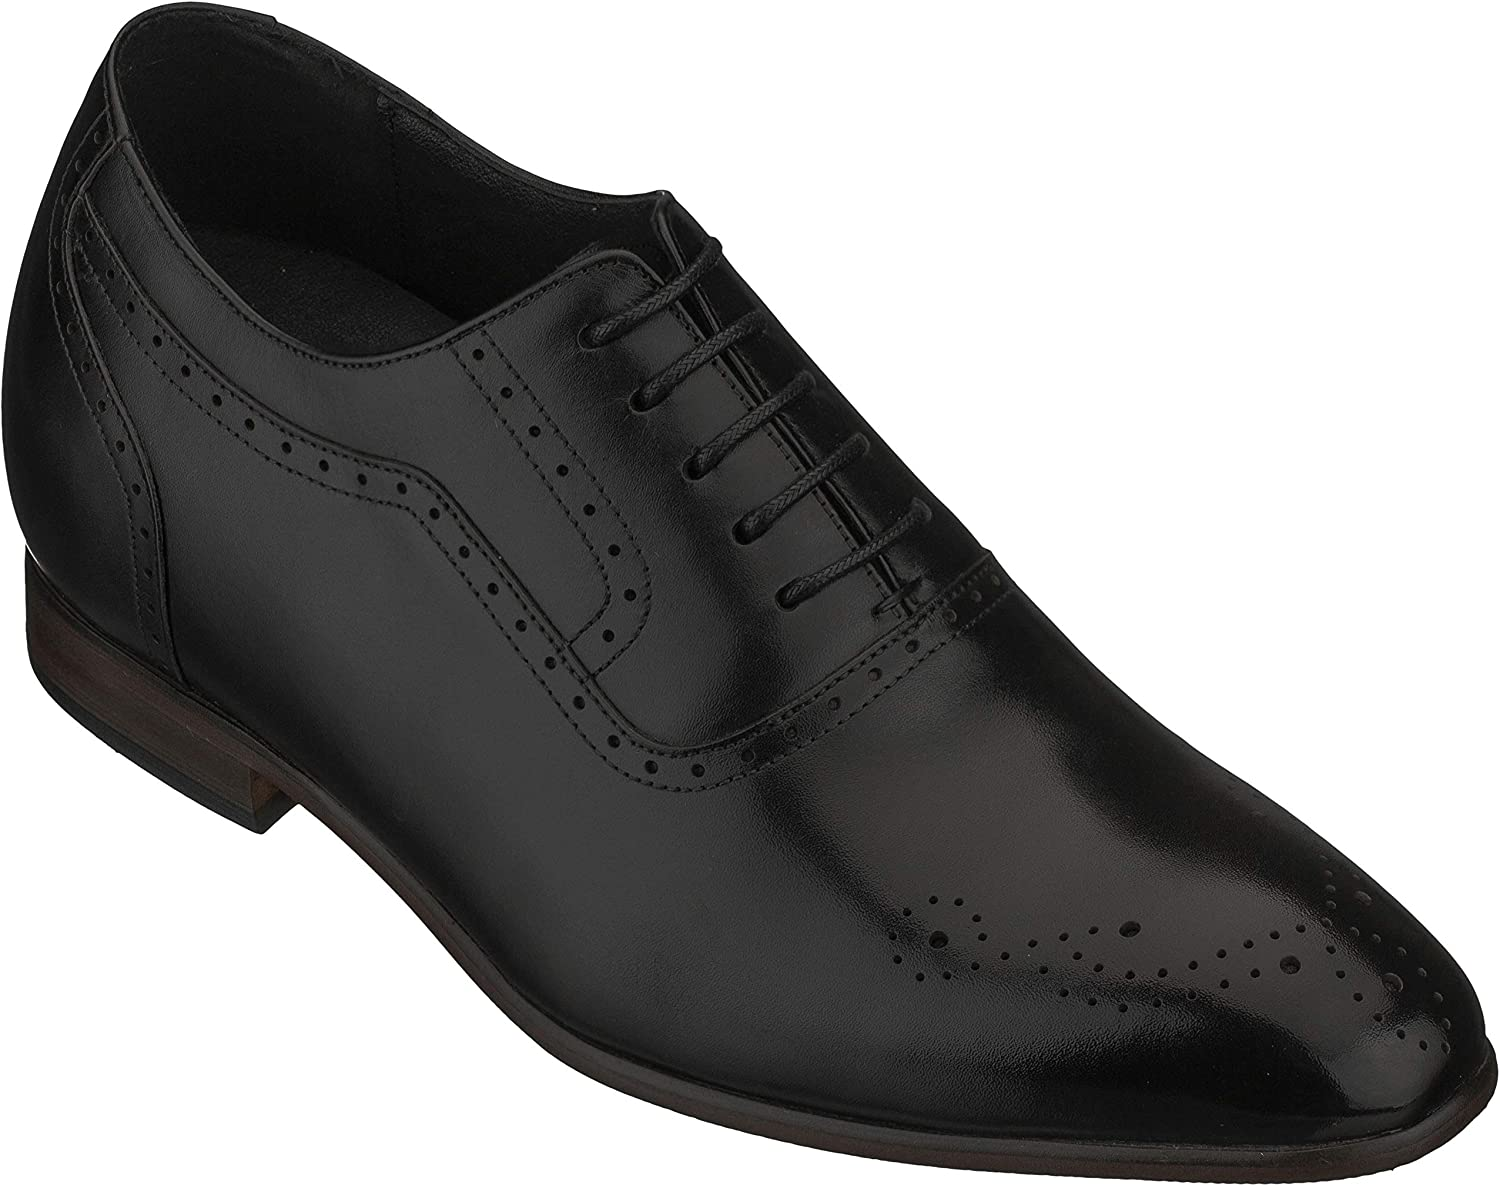 CALTO Men's Invisible Height Increasing Elevator Shoes - Premium Leather Lace-up Lightweight Formal Oxfords - 2.6 Inches Taller